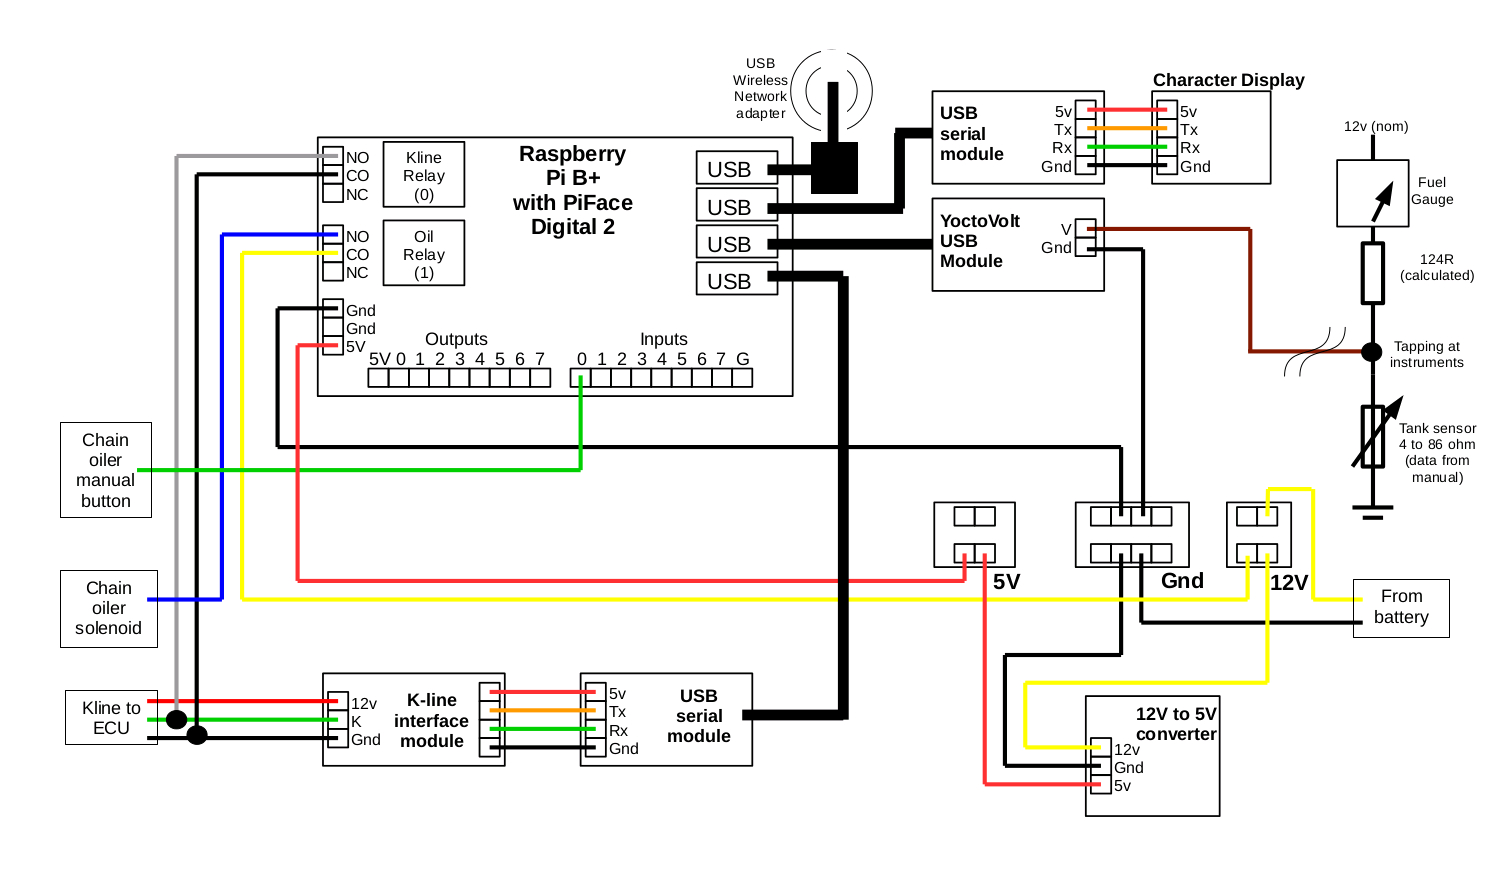 Odb2 To Usb Wiring Diagram | Wiring Diagram - Wiring Diagram For Obd2 Port To Usb